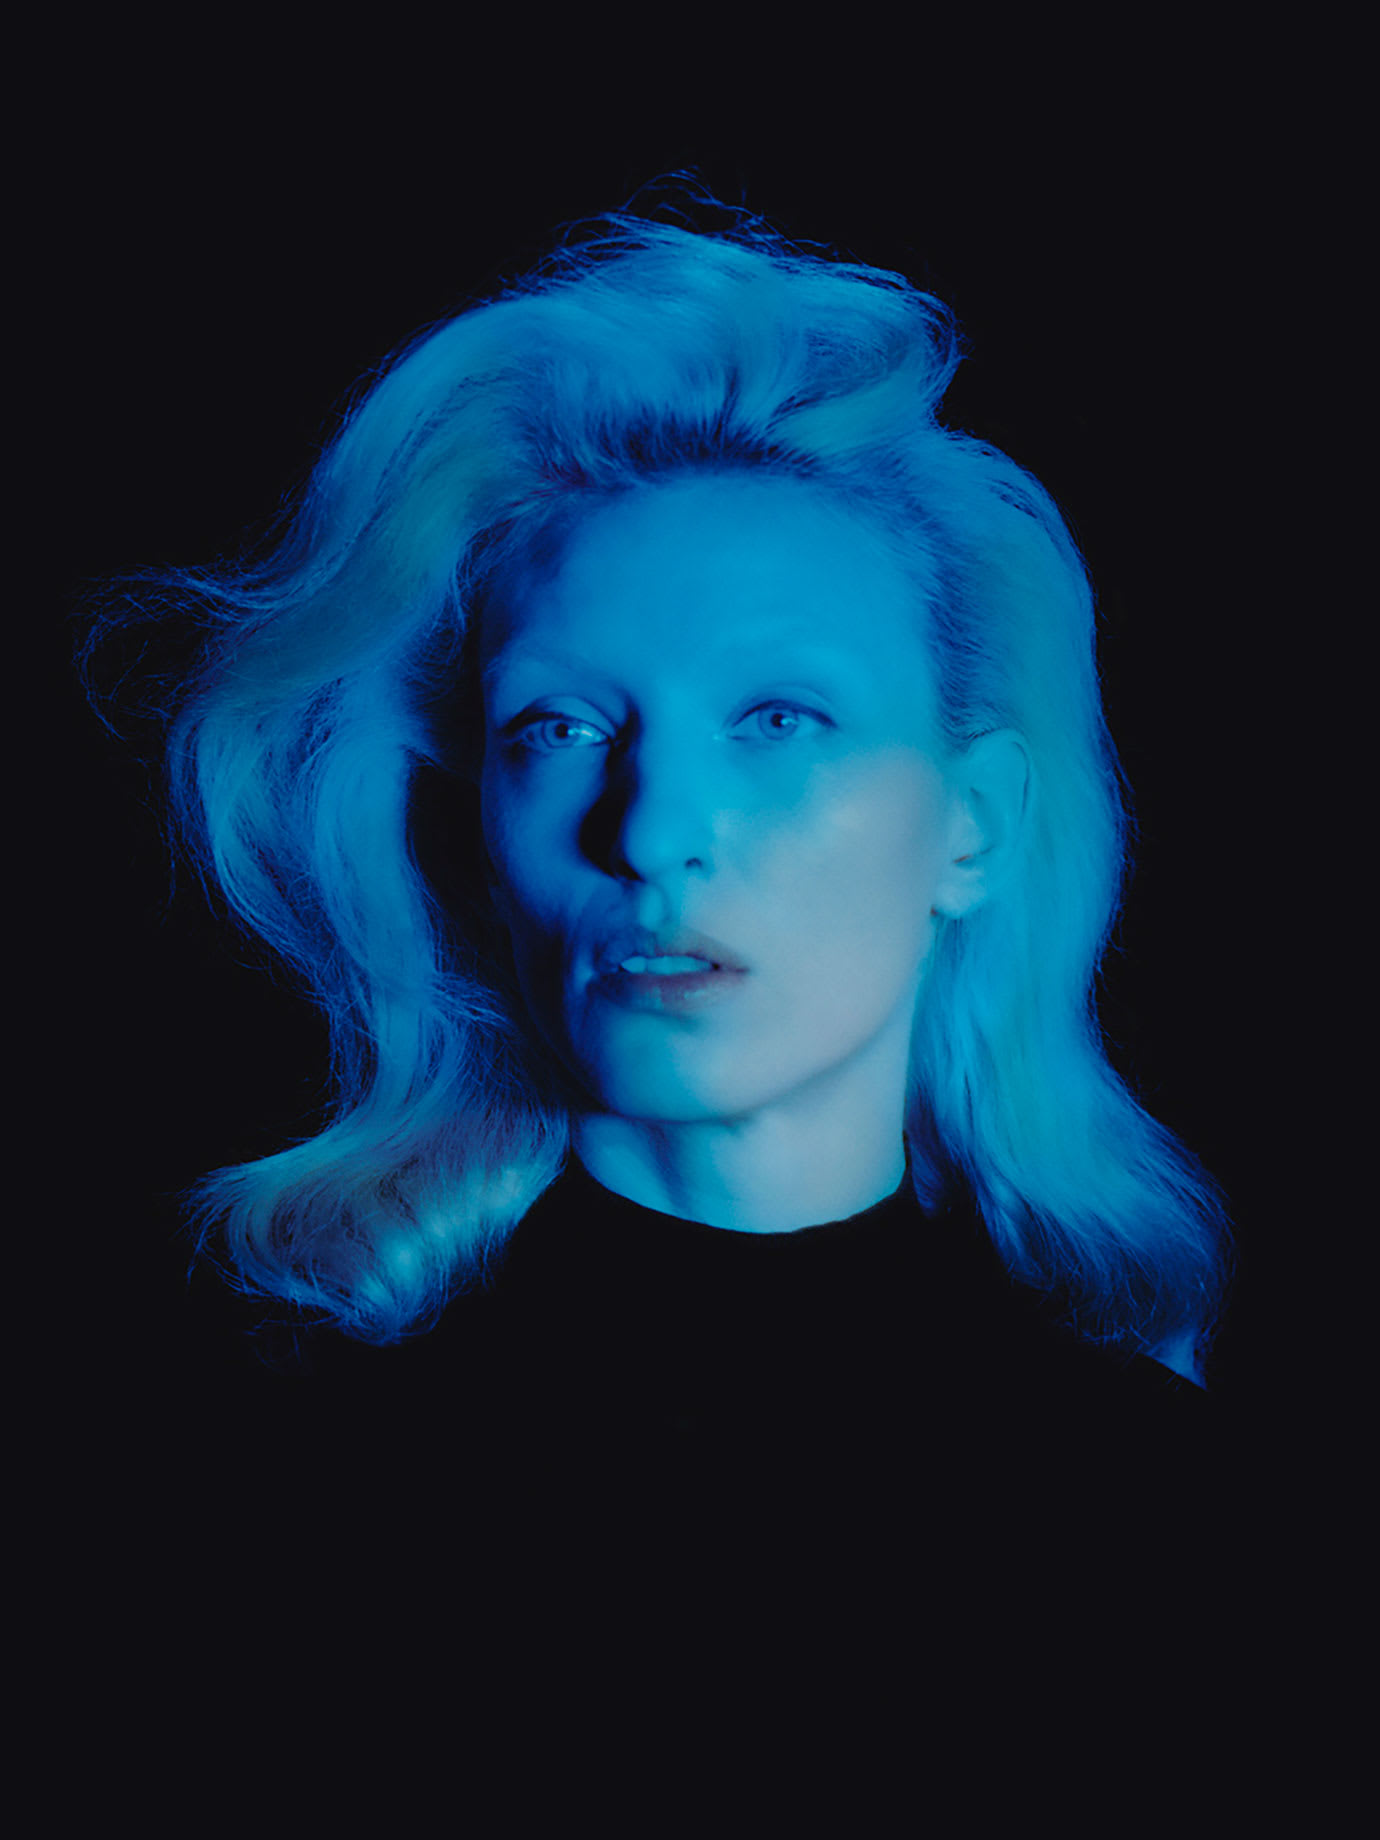 A blonde woman with a blue light on her.